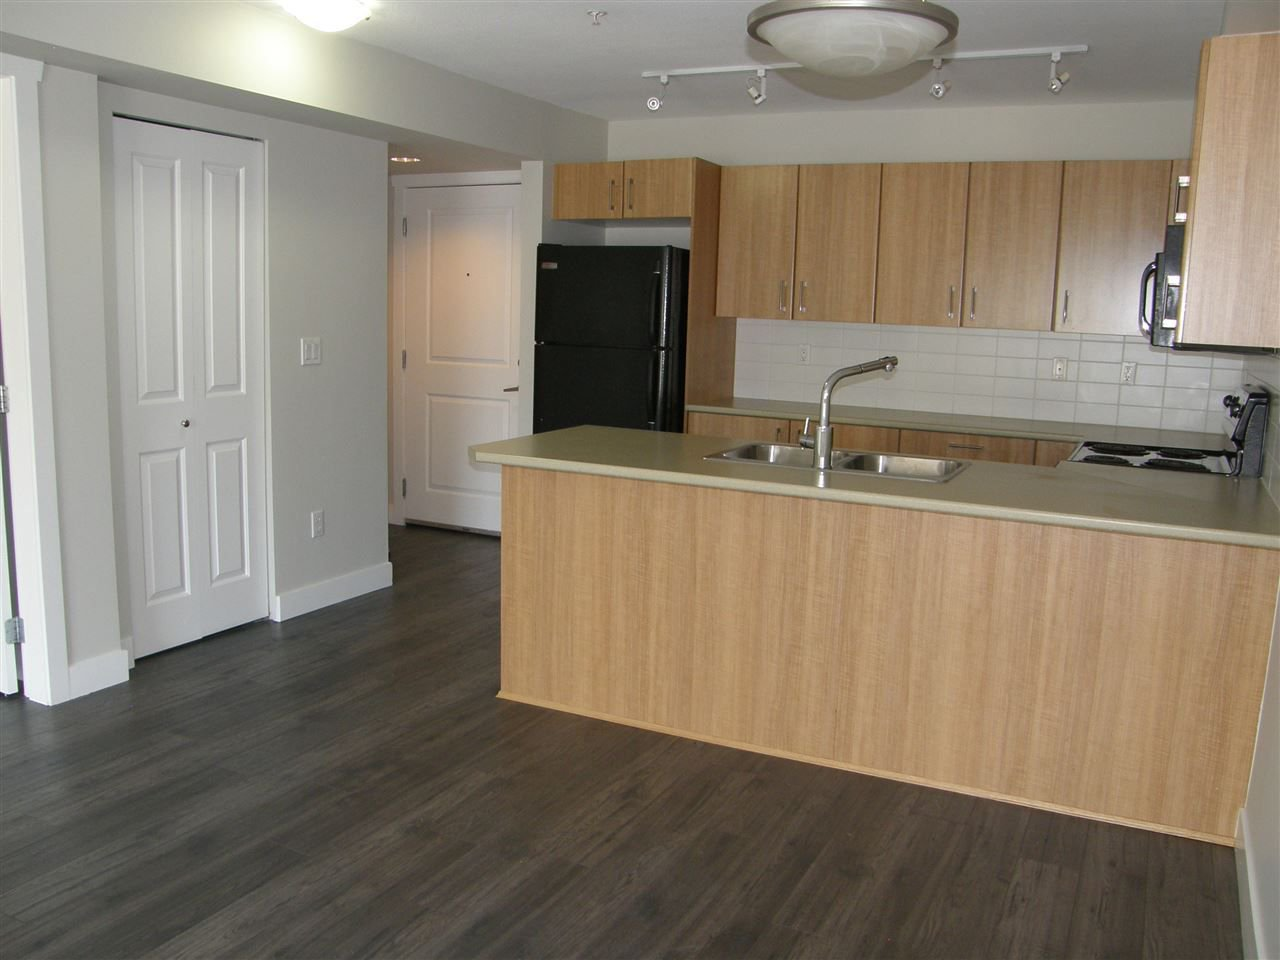 "Photo 6: Photos: 309 45561 YALE Road in Chilliwack: Chilliwack W Young-Well Condo for sale in ""VIBE CONDOS"" : MLS®# R2292861"